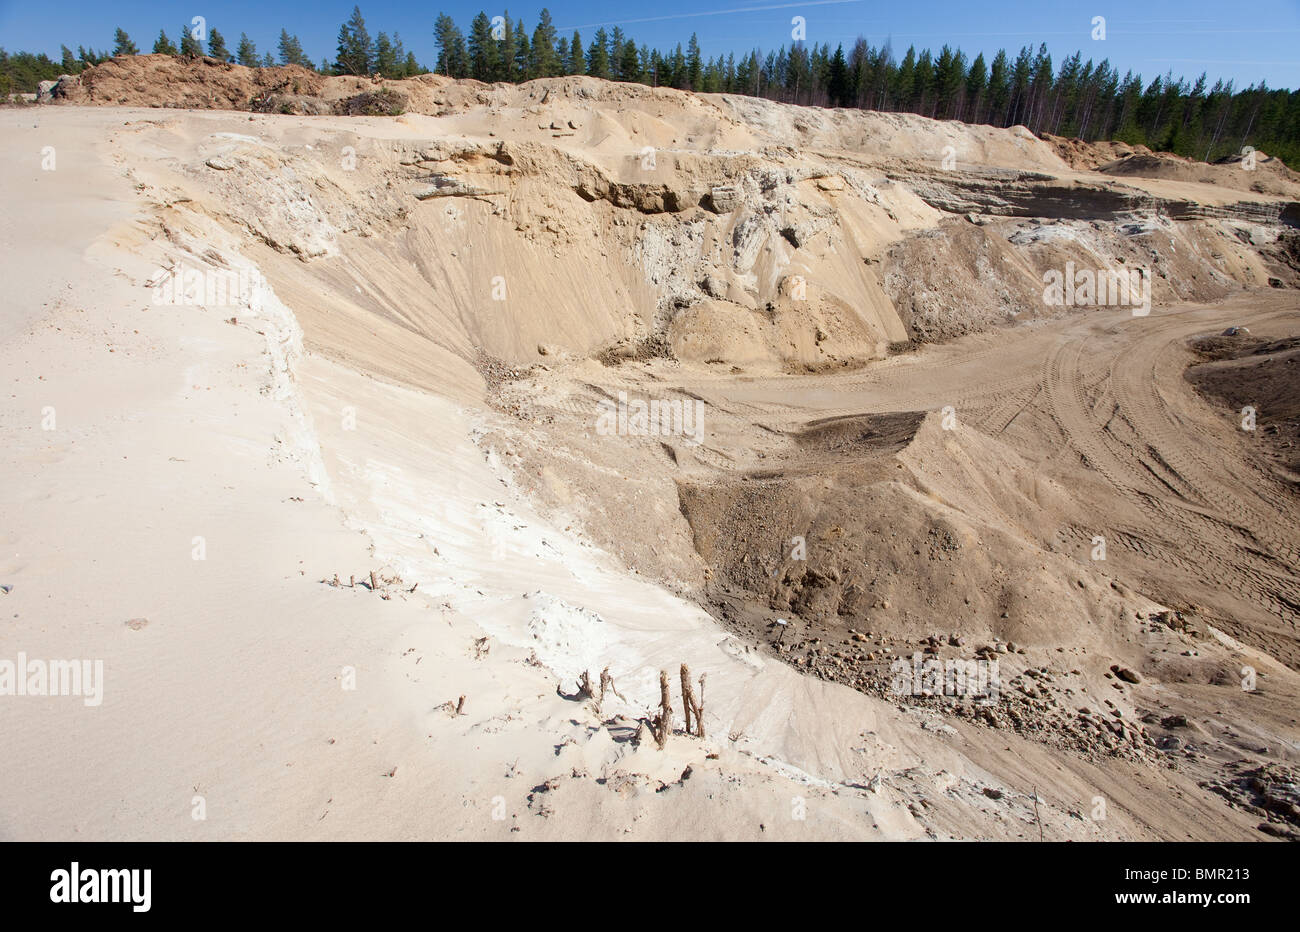 Wall of a gravel pit at a sandy ridge / glacial esker  , Finland - Stock Image